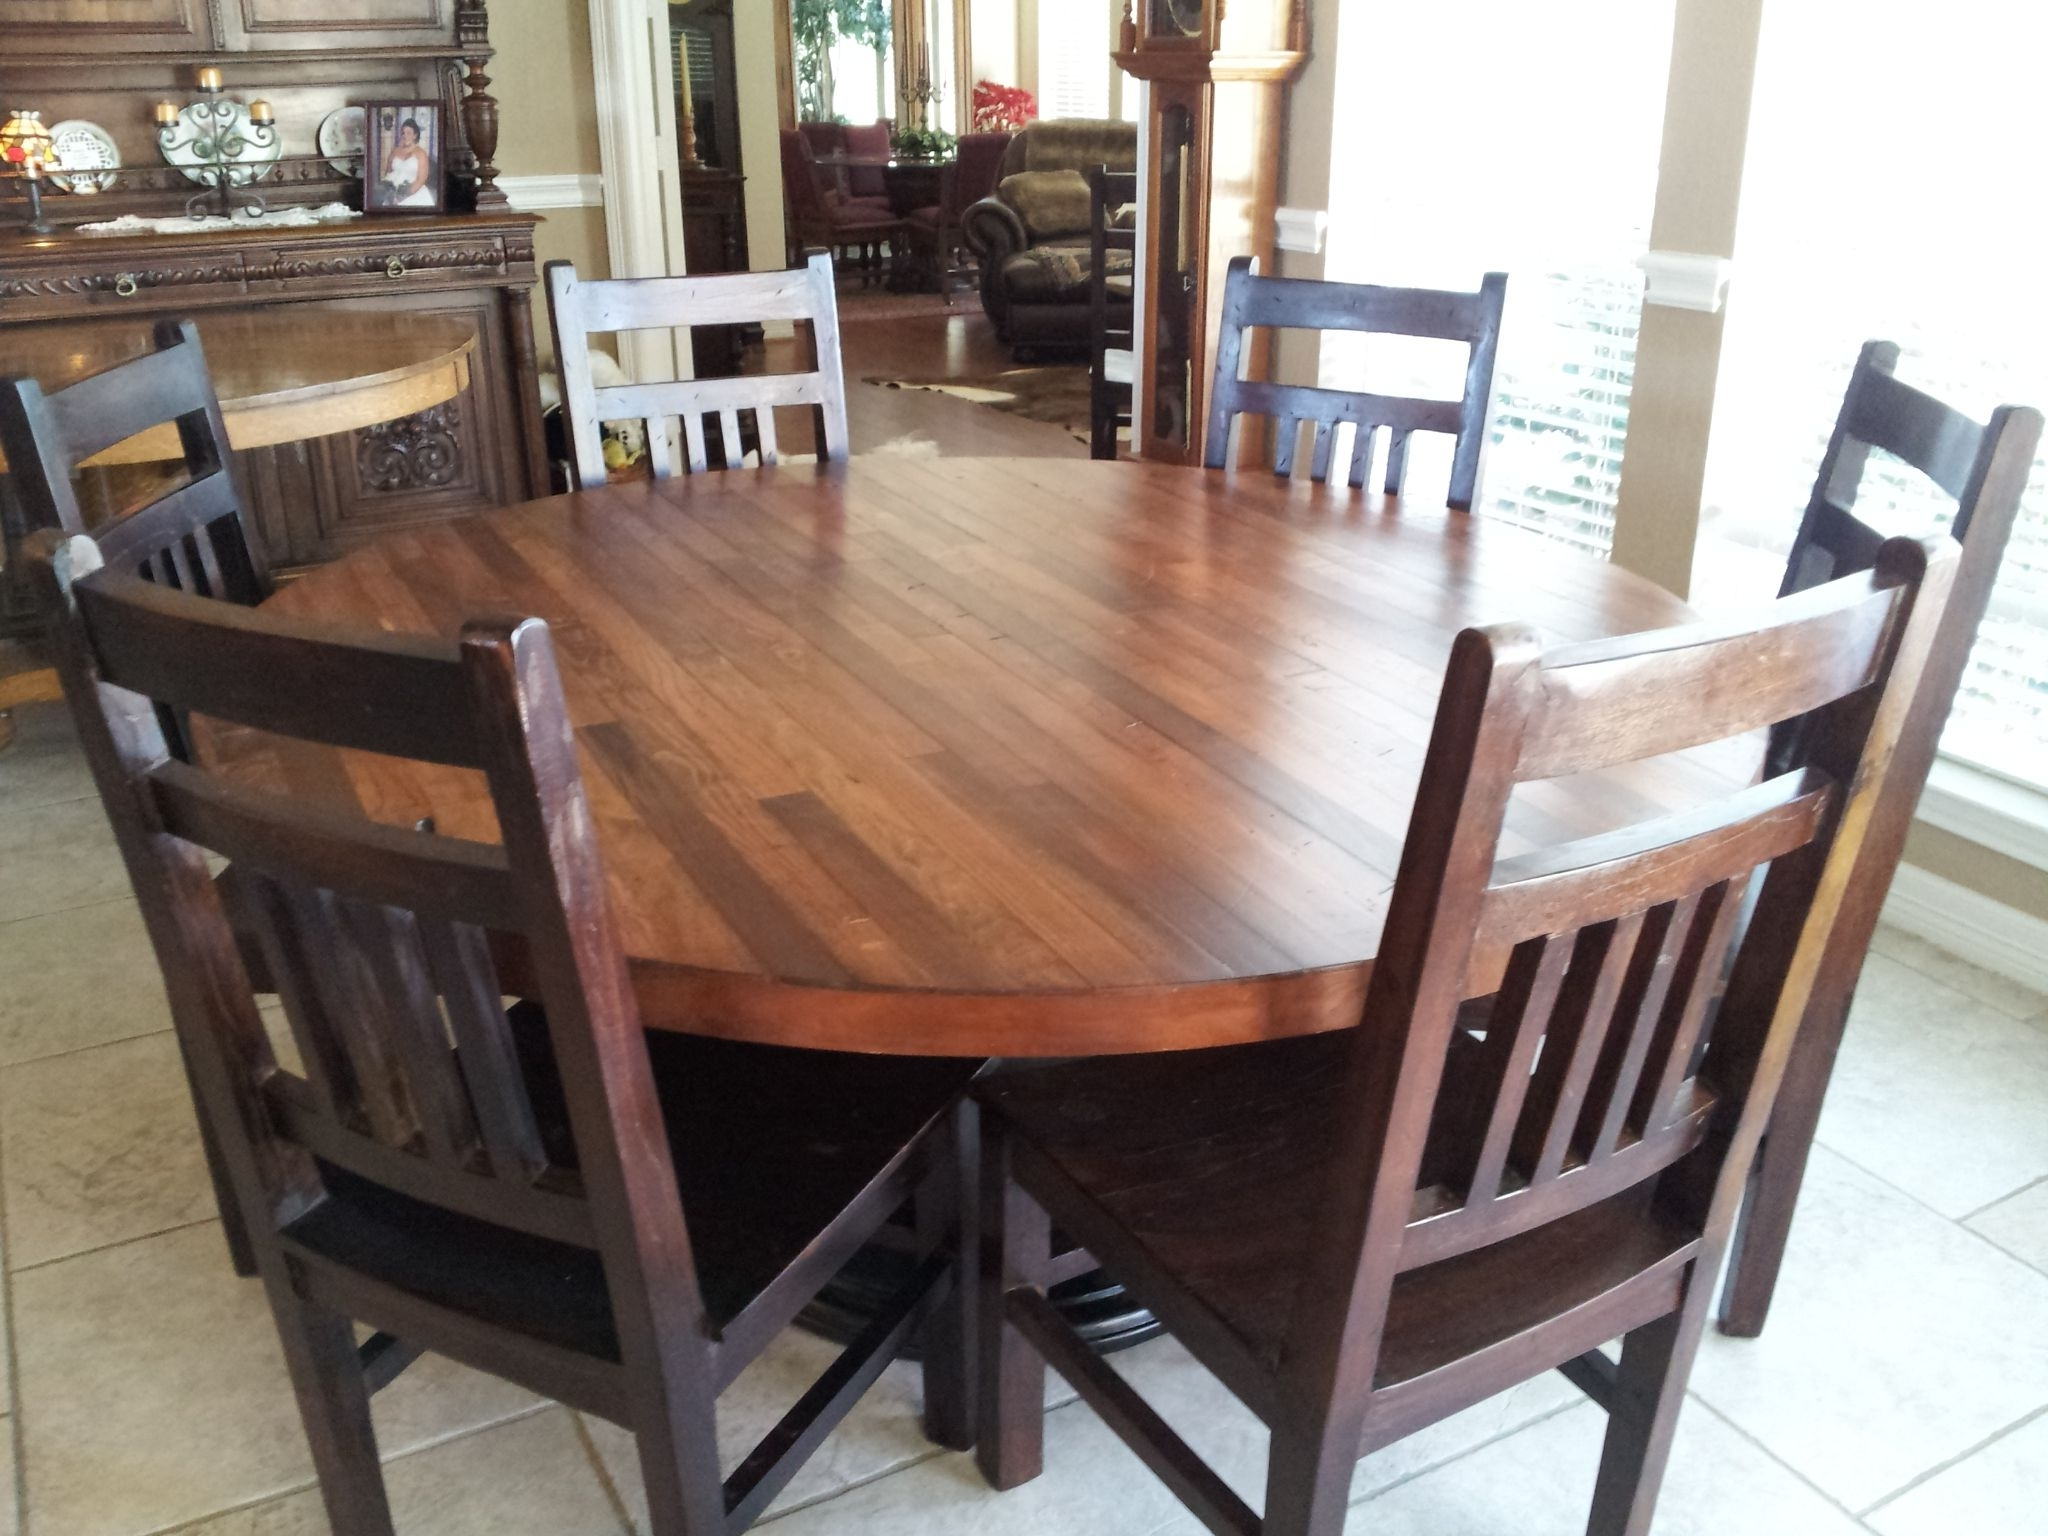 Fashionable Walnut Dining Tables And Chairs Throughout Walnut Dining Tables (View 6 of 25)